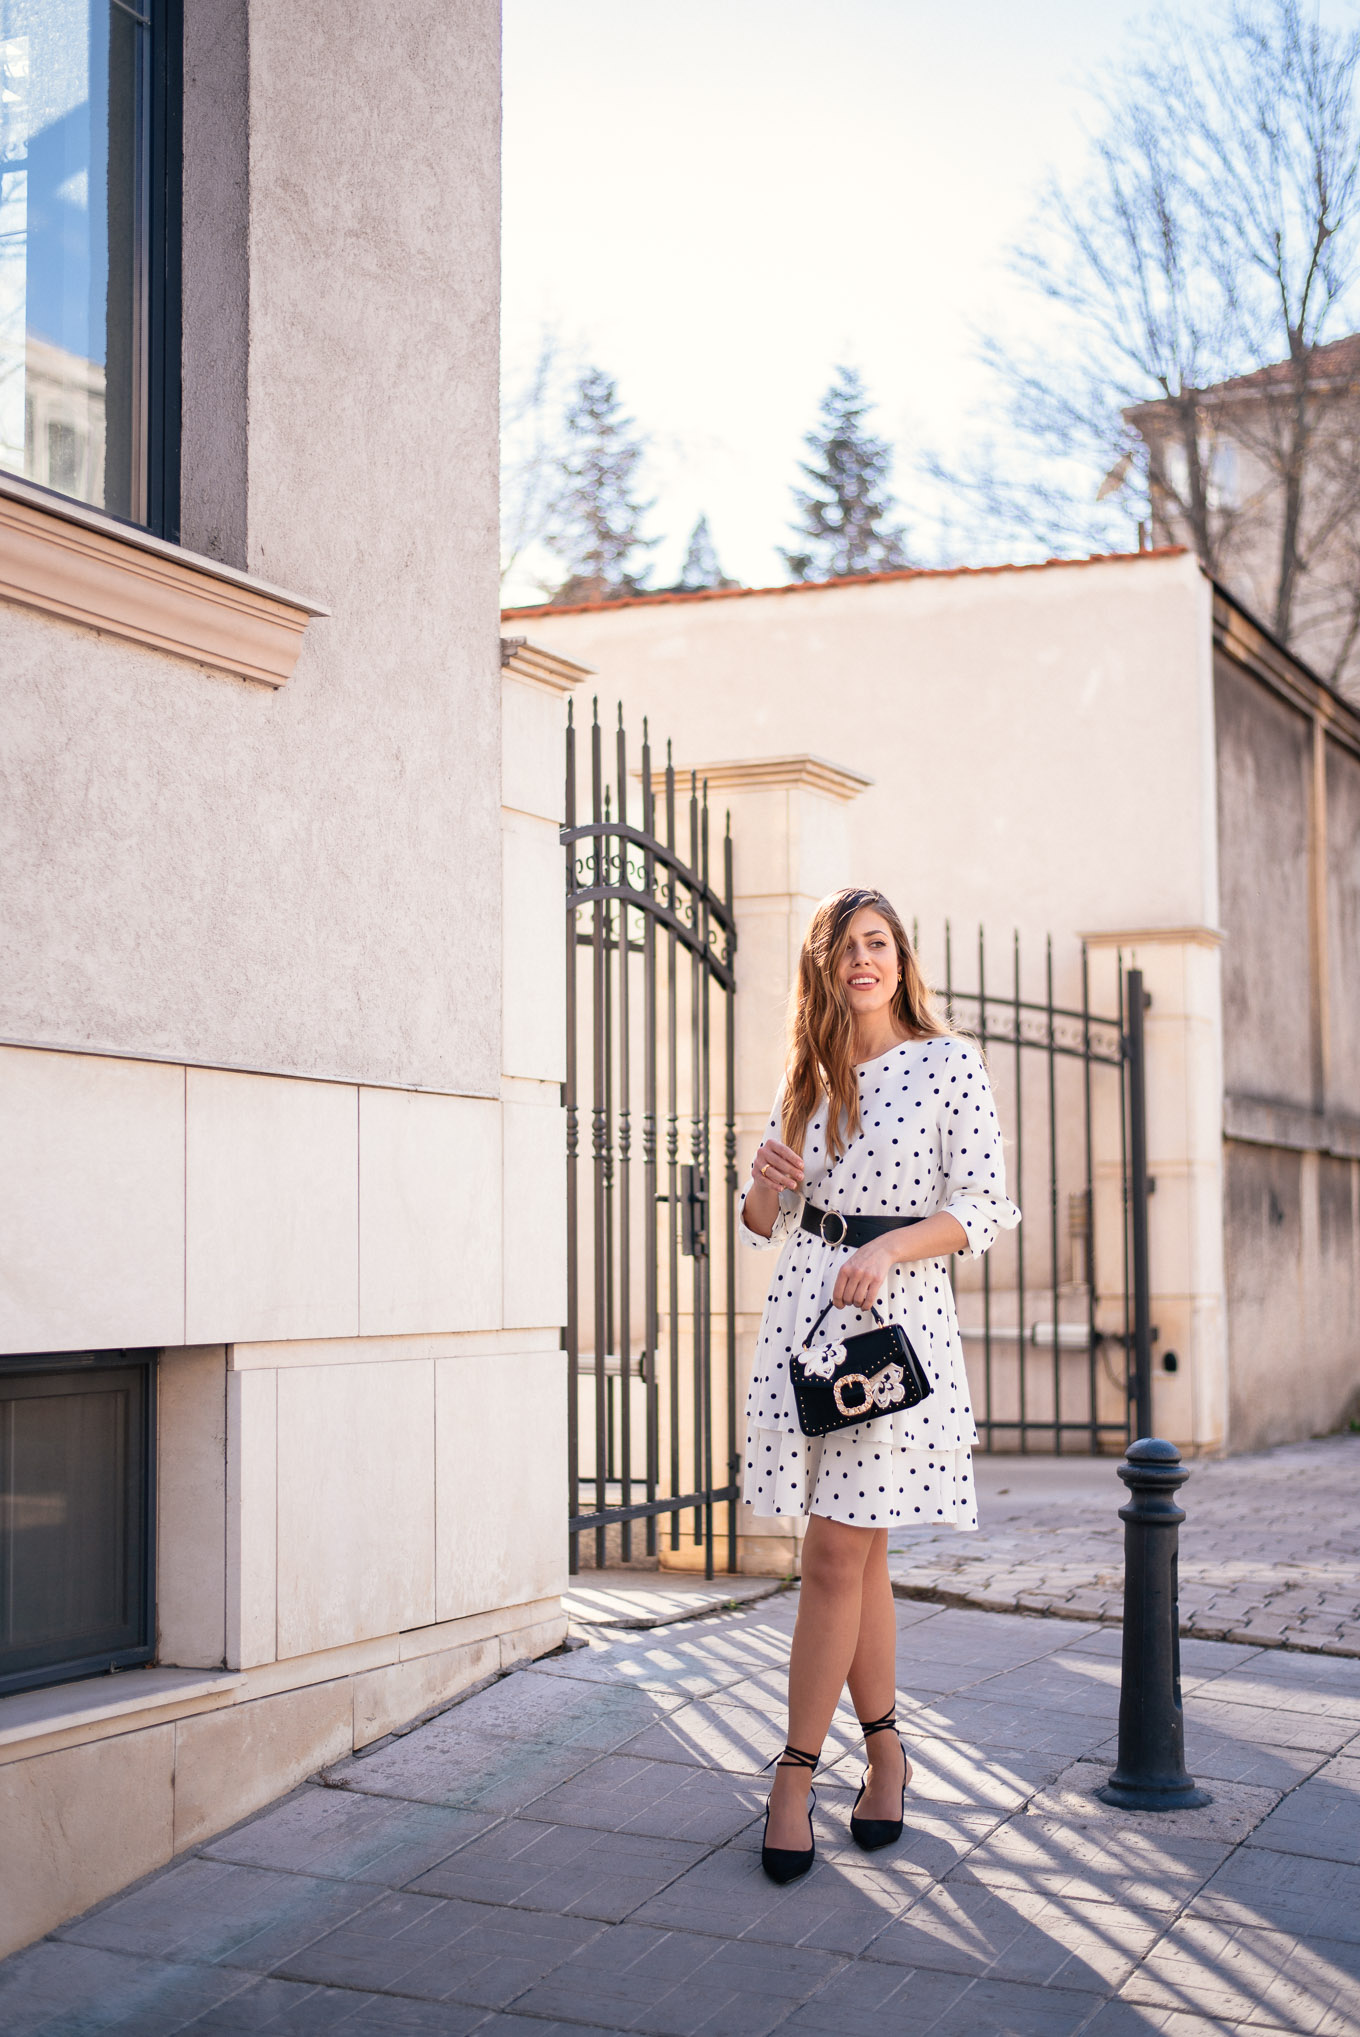 Bulgarian blogger wearing polka dot dress for spring